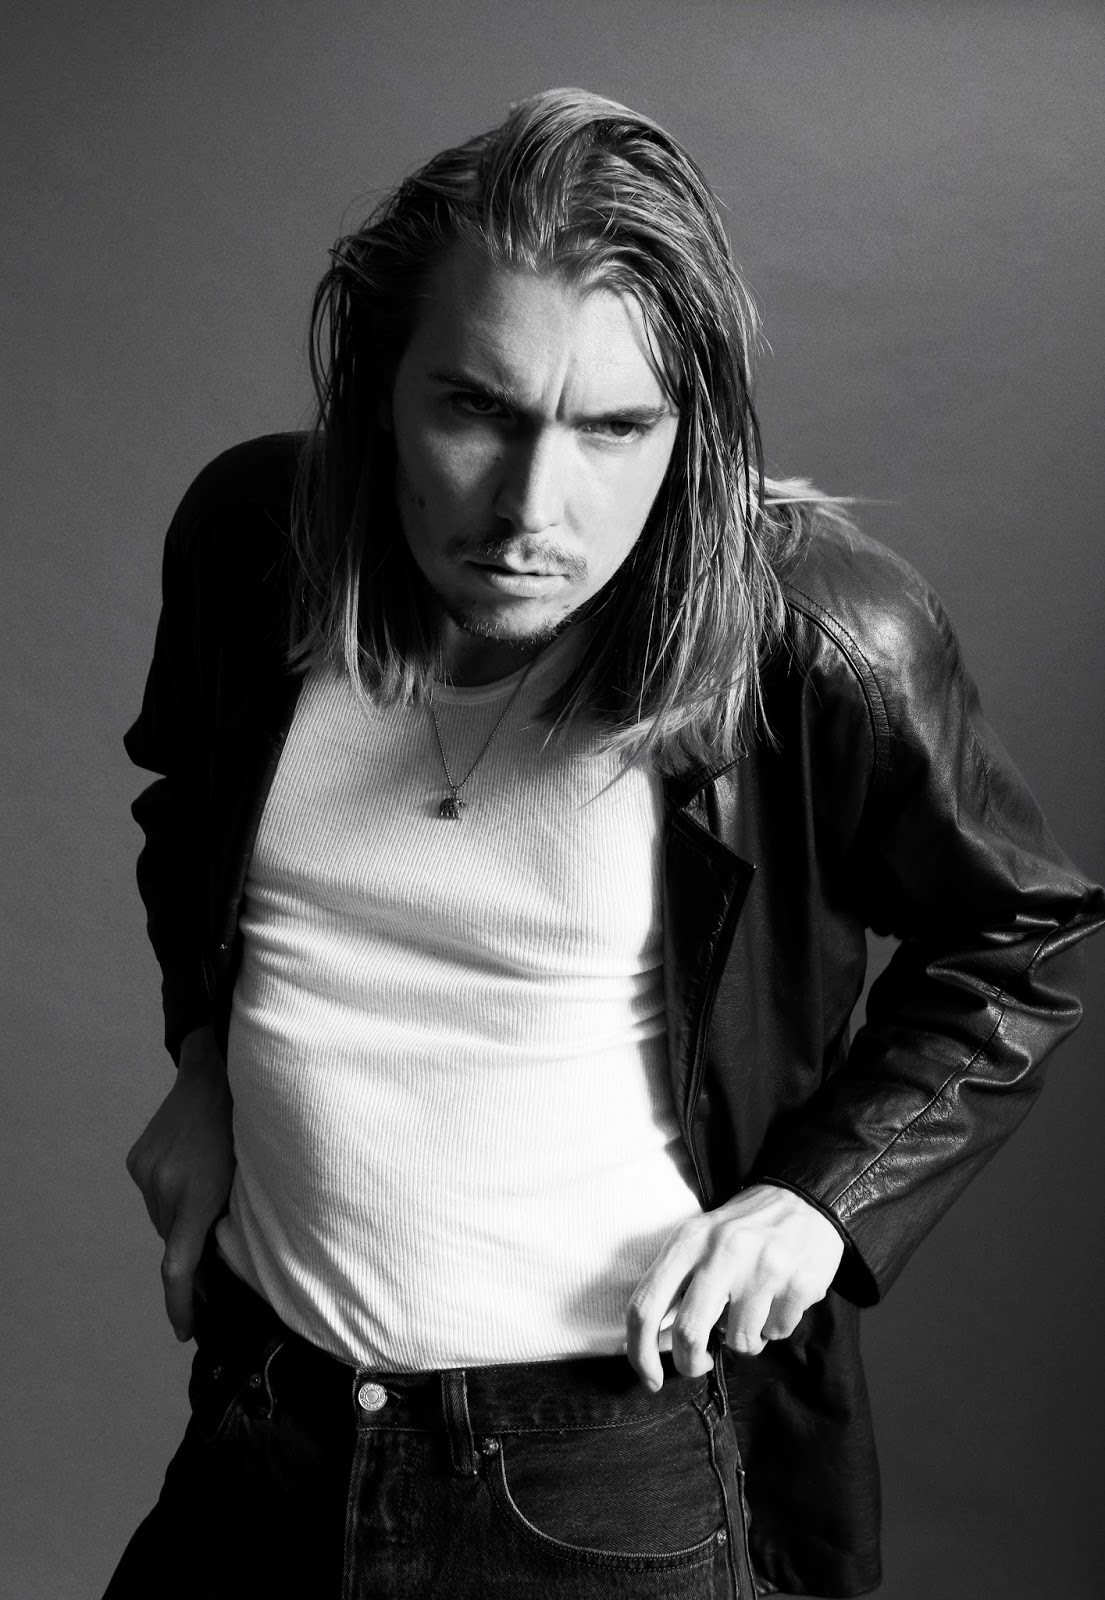 Runnin' Outta Luck: A Few Words About The New Alex Cameron Record